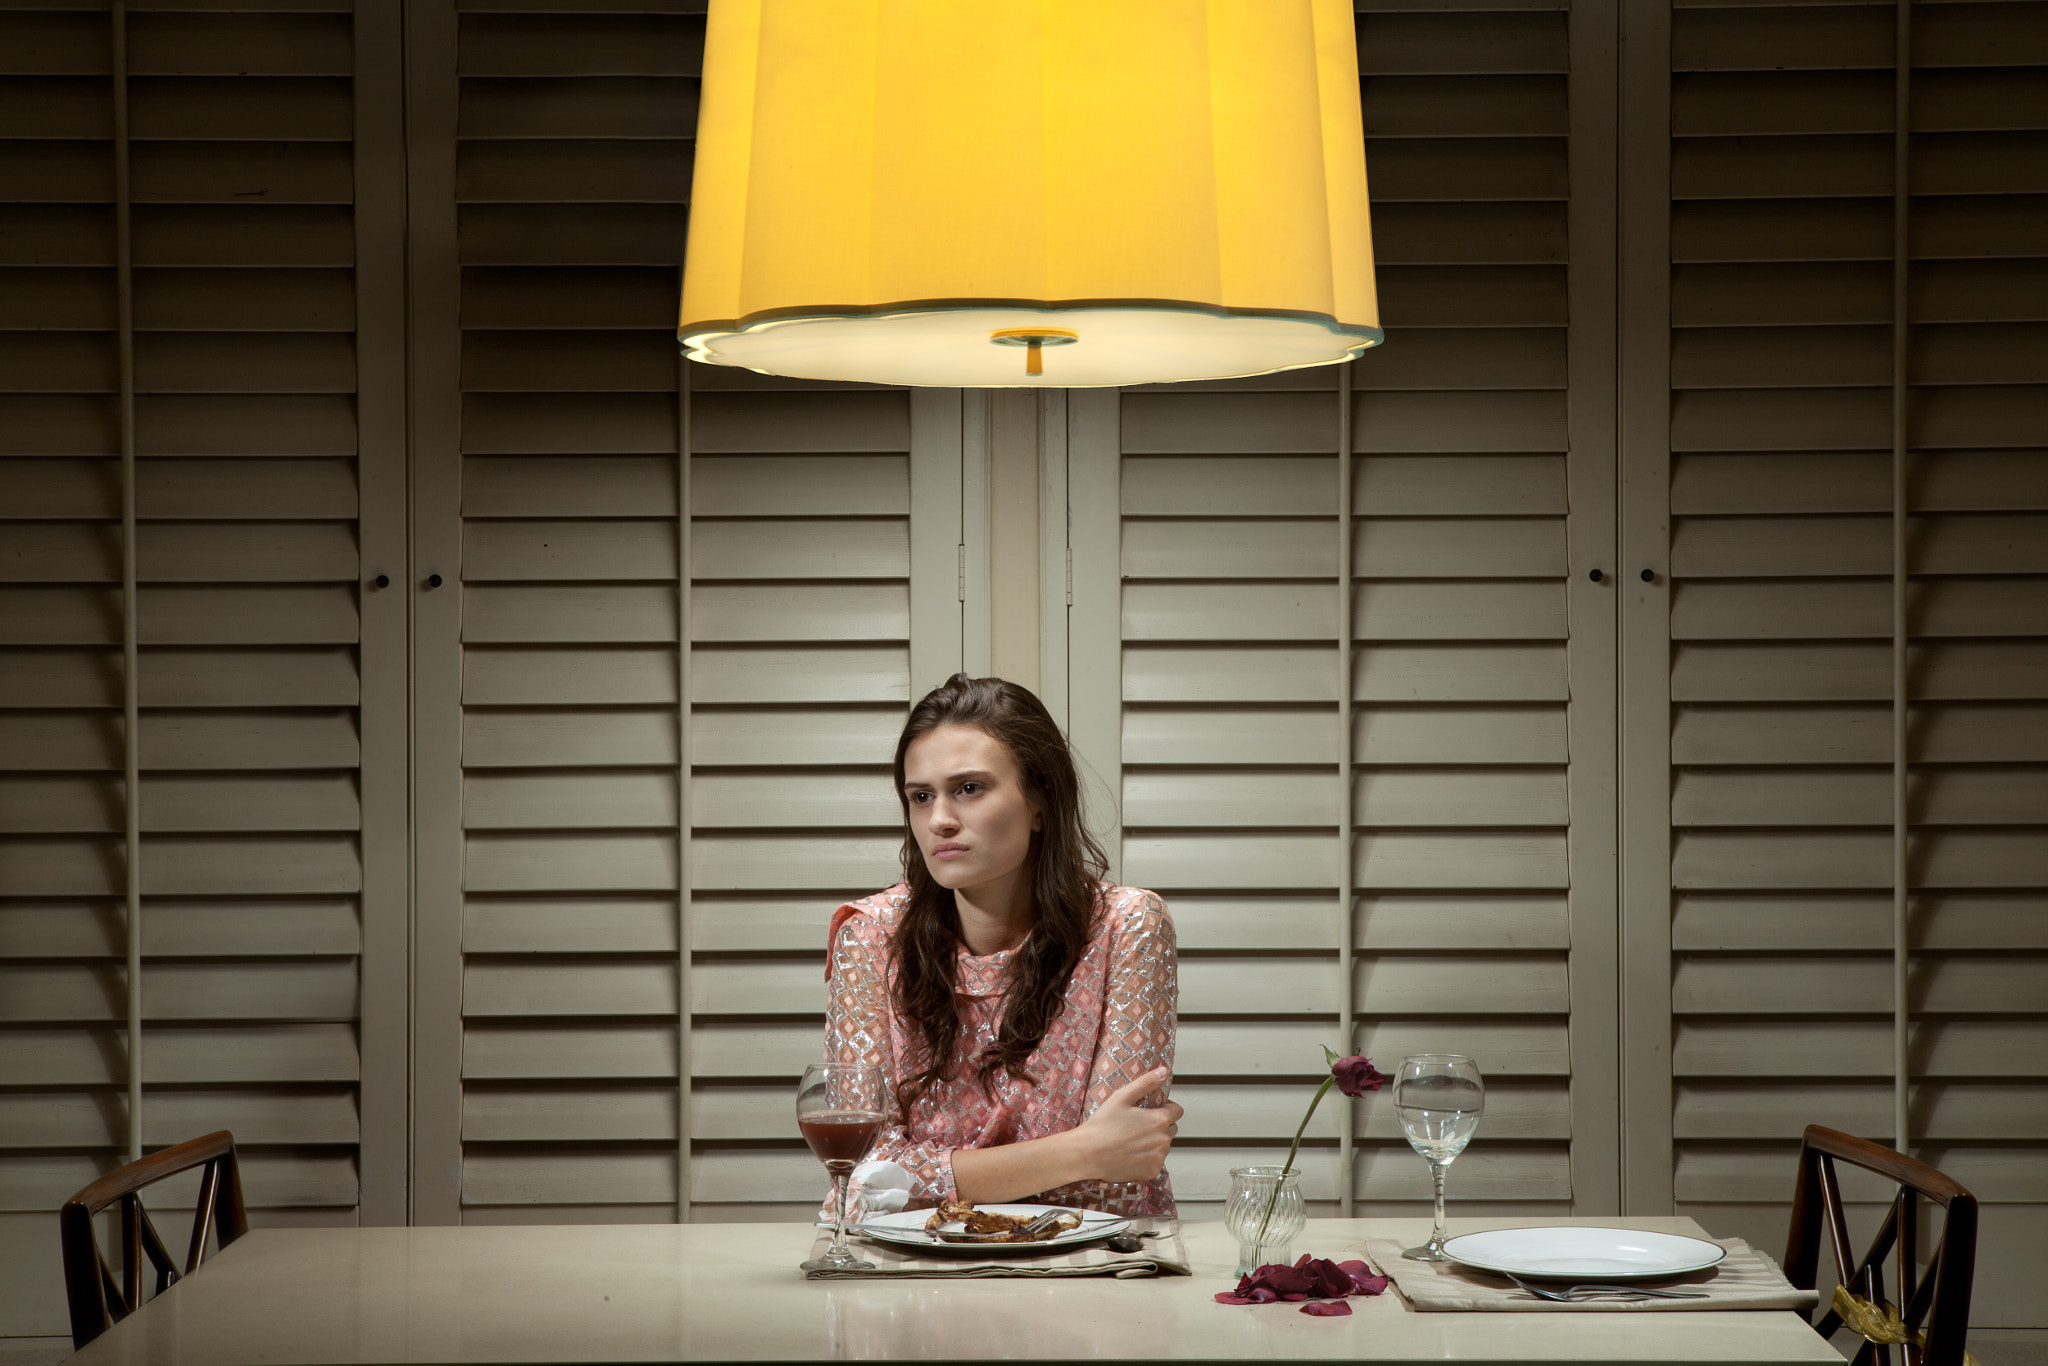 Photograph The Loneliest Supper by Justin Bettman on 500px